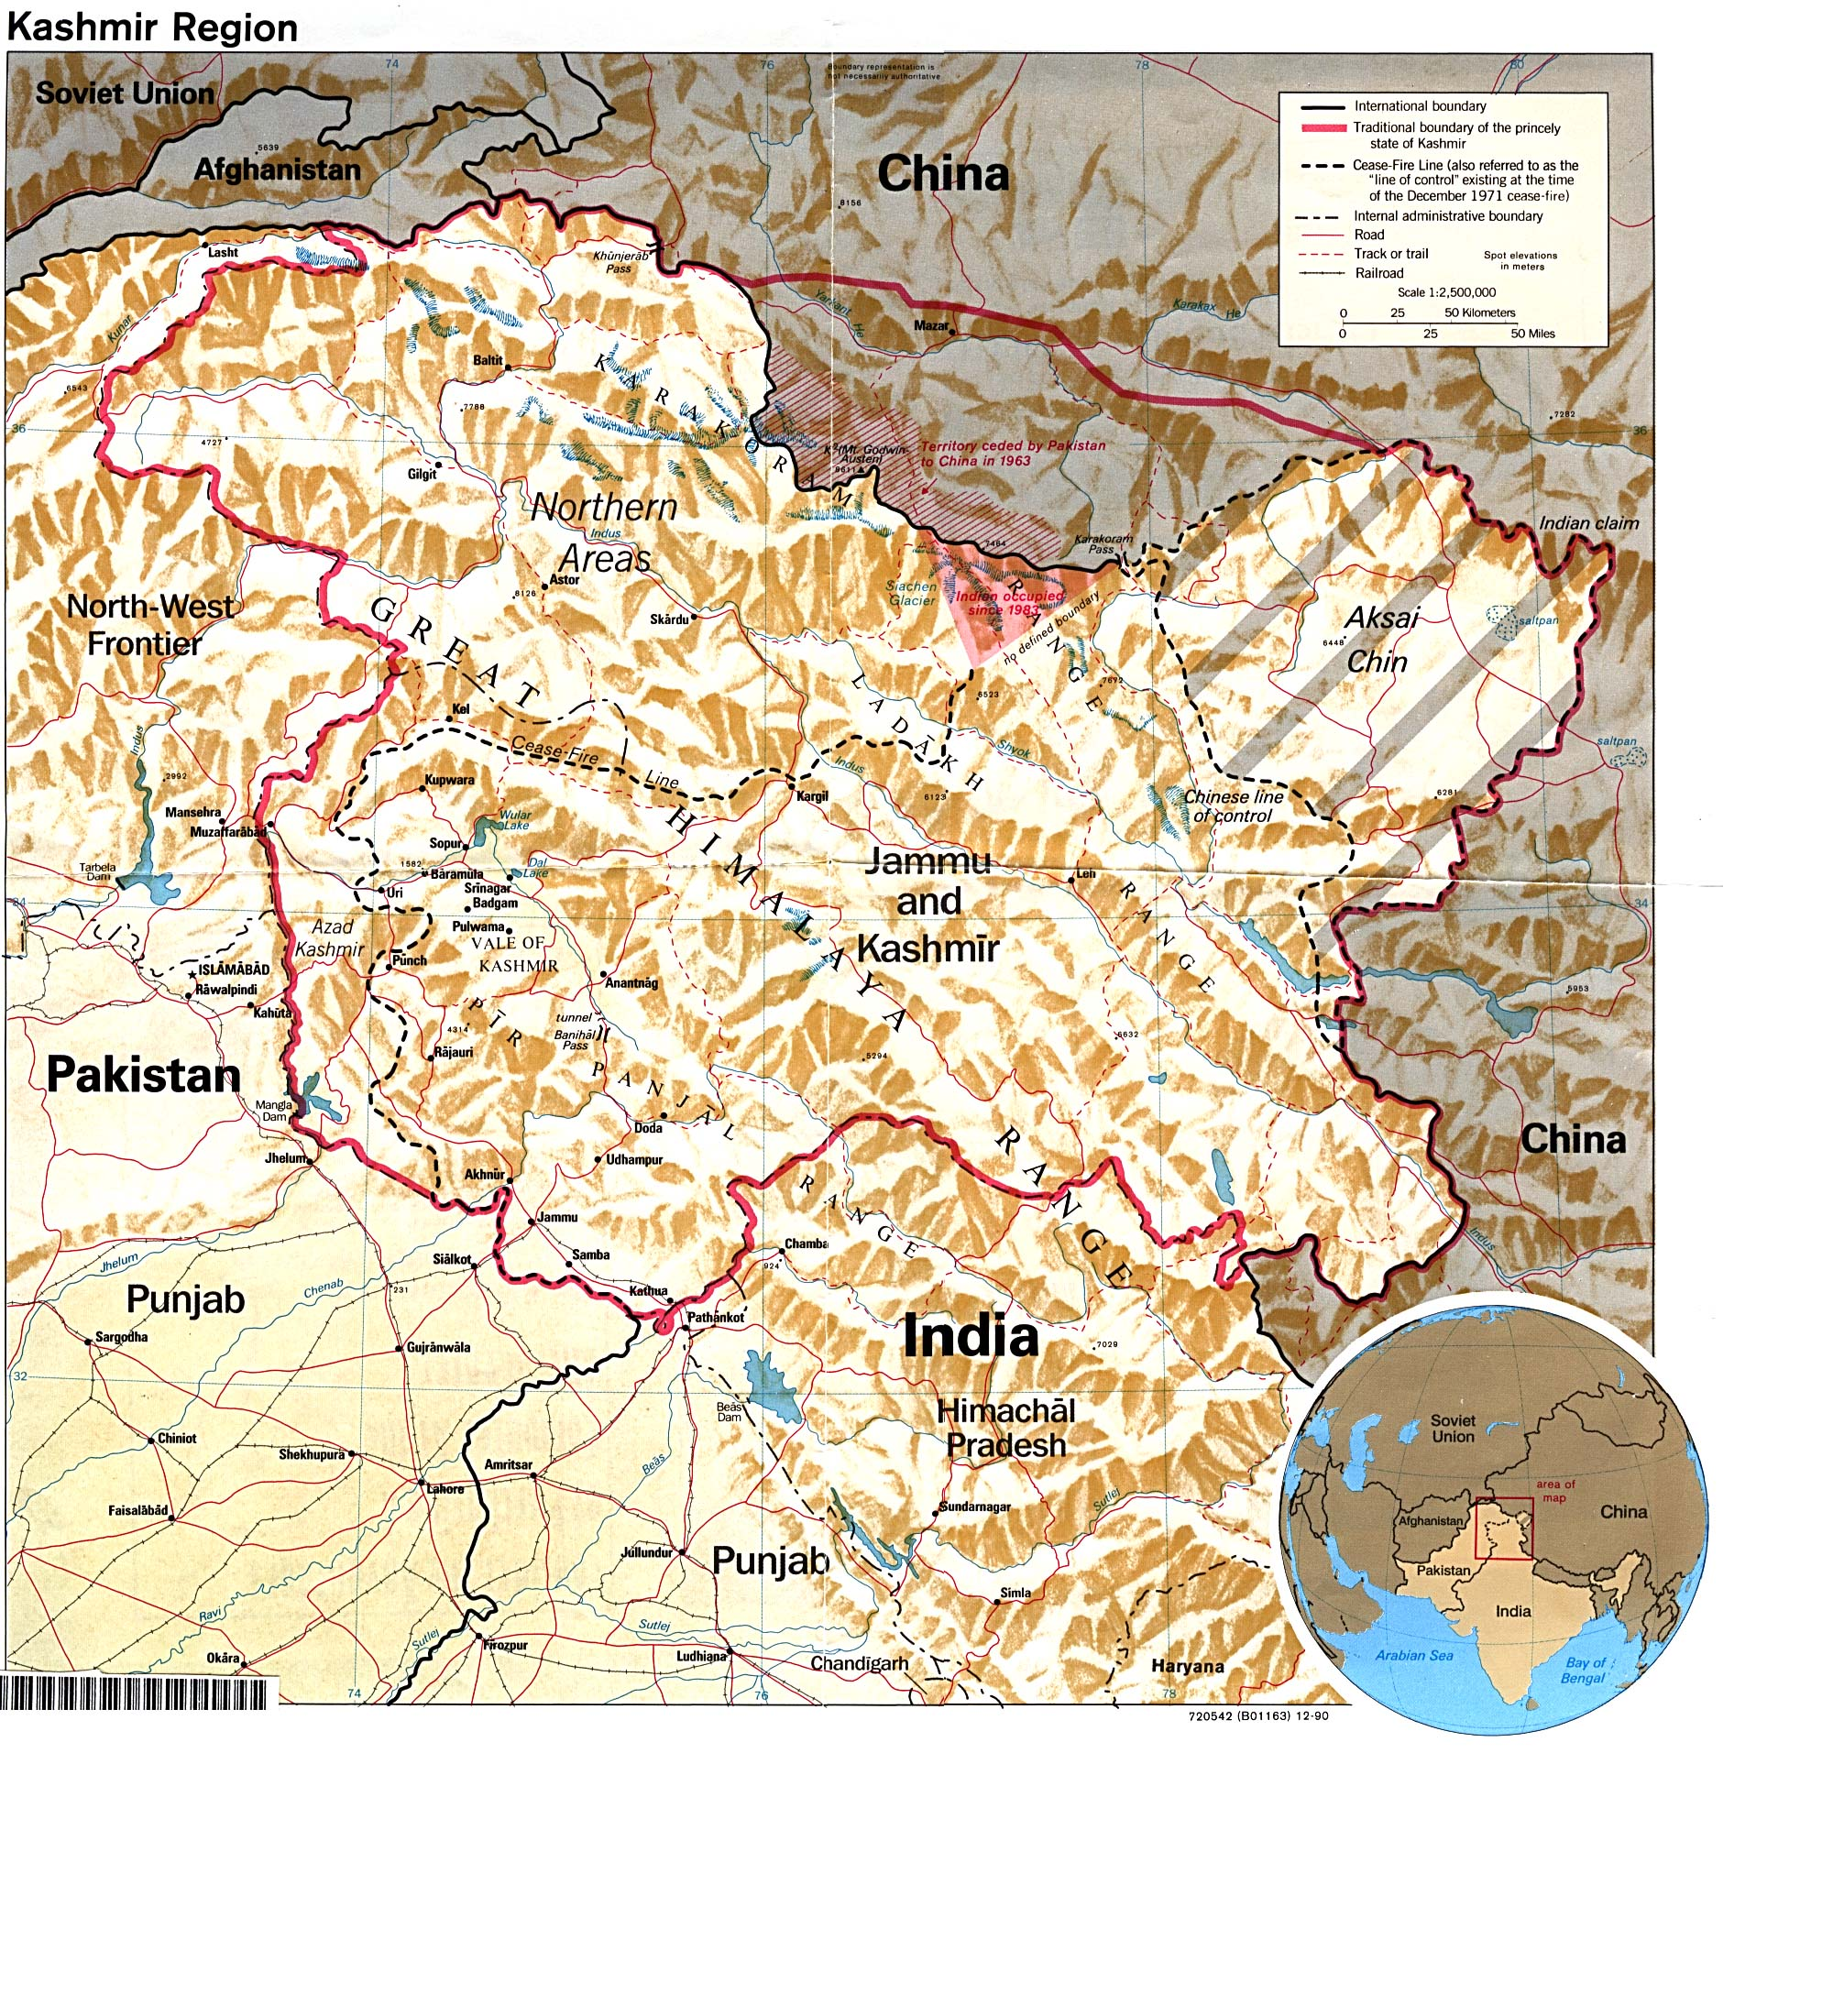 Map Of India And Pakistan Border.Kashmir Maps Perry Castaneda Map Collection Ut Library Online